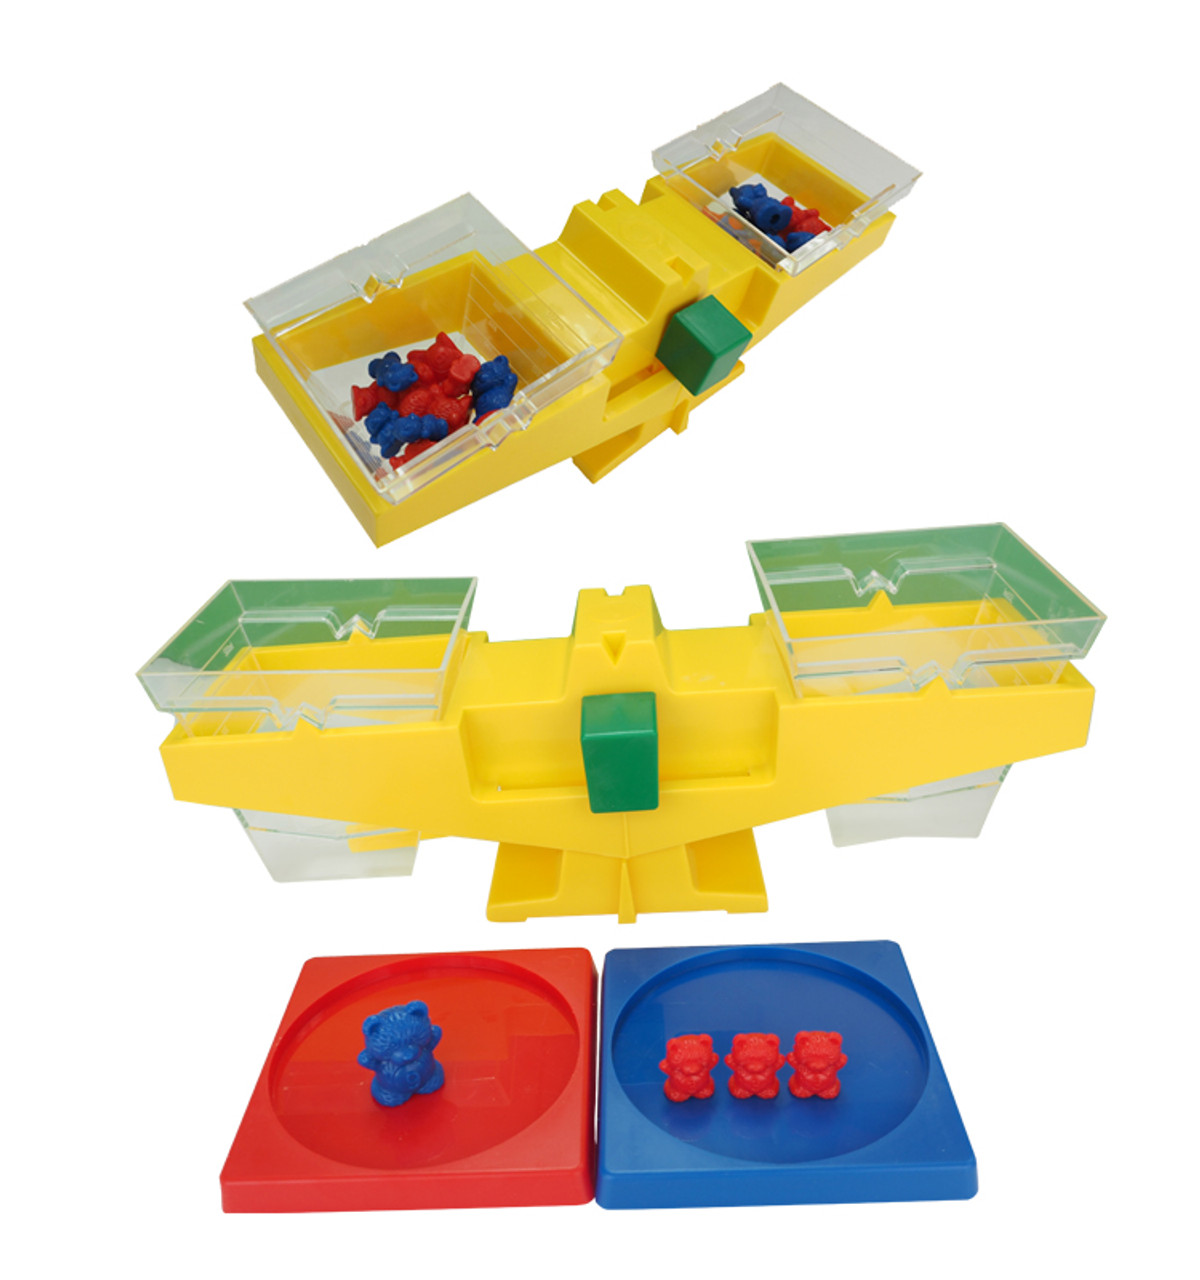 preschool-math-toy-counting-bears-balance-scale-parts